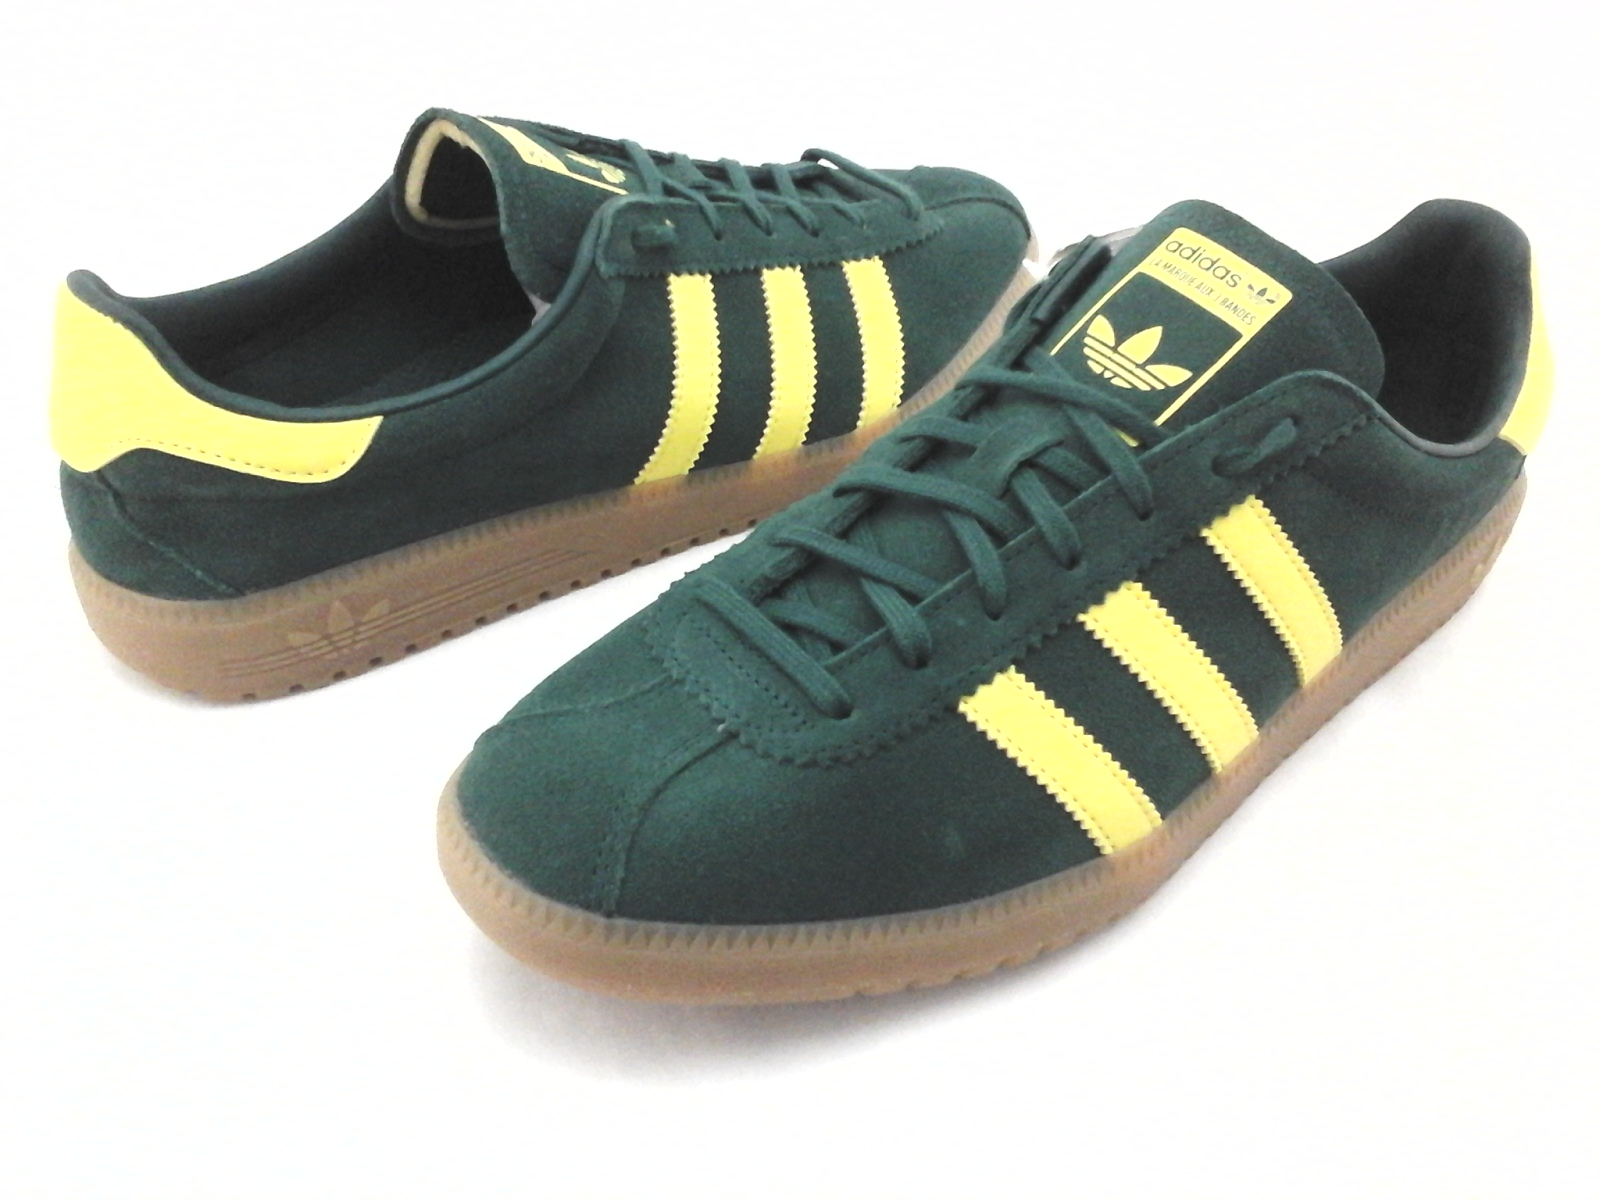 c1ccd44e037 Adidas BERMUDA Shoes Green Suede Yellow Gum Sole Retro B41472 Men s US  11 45 1 3